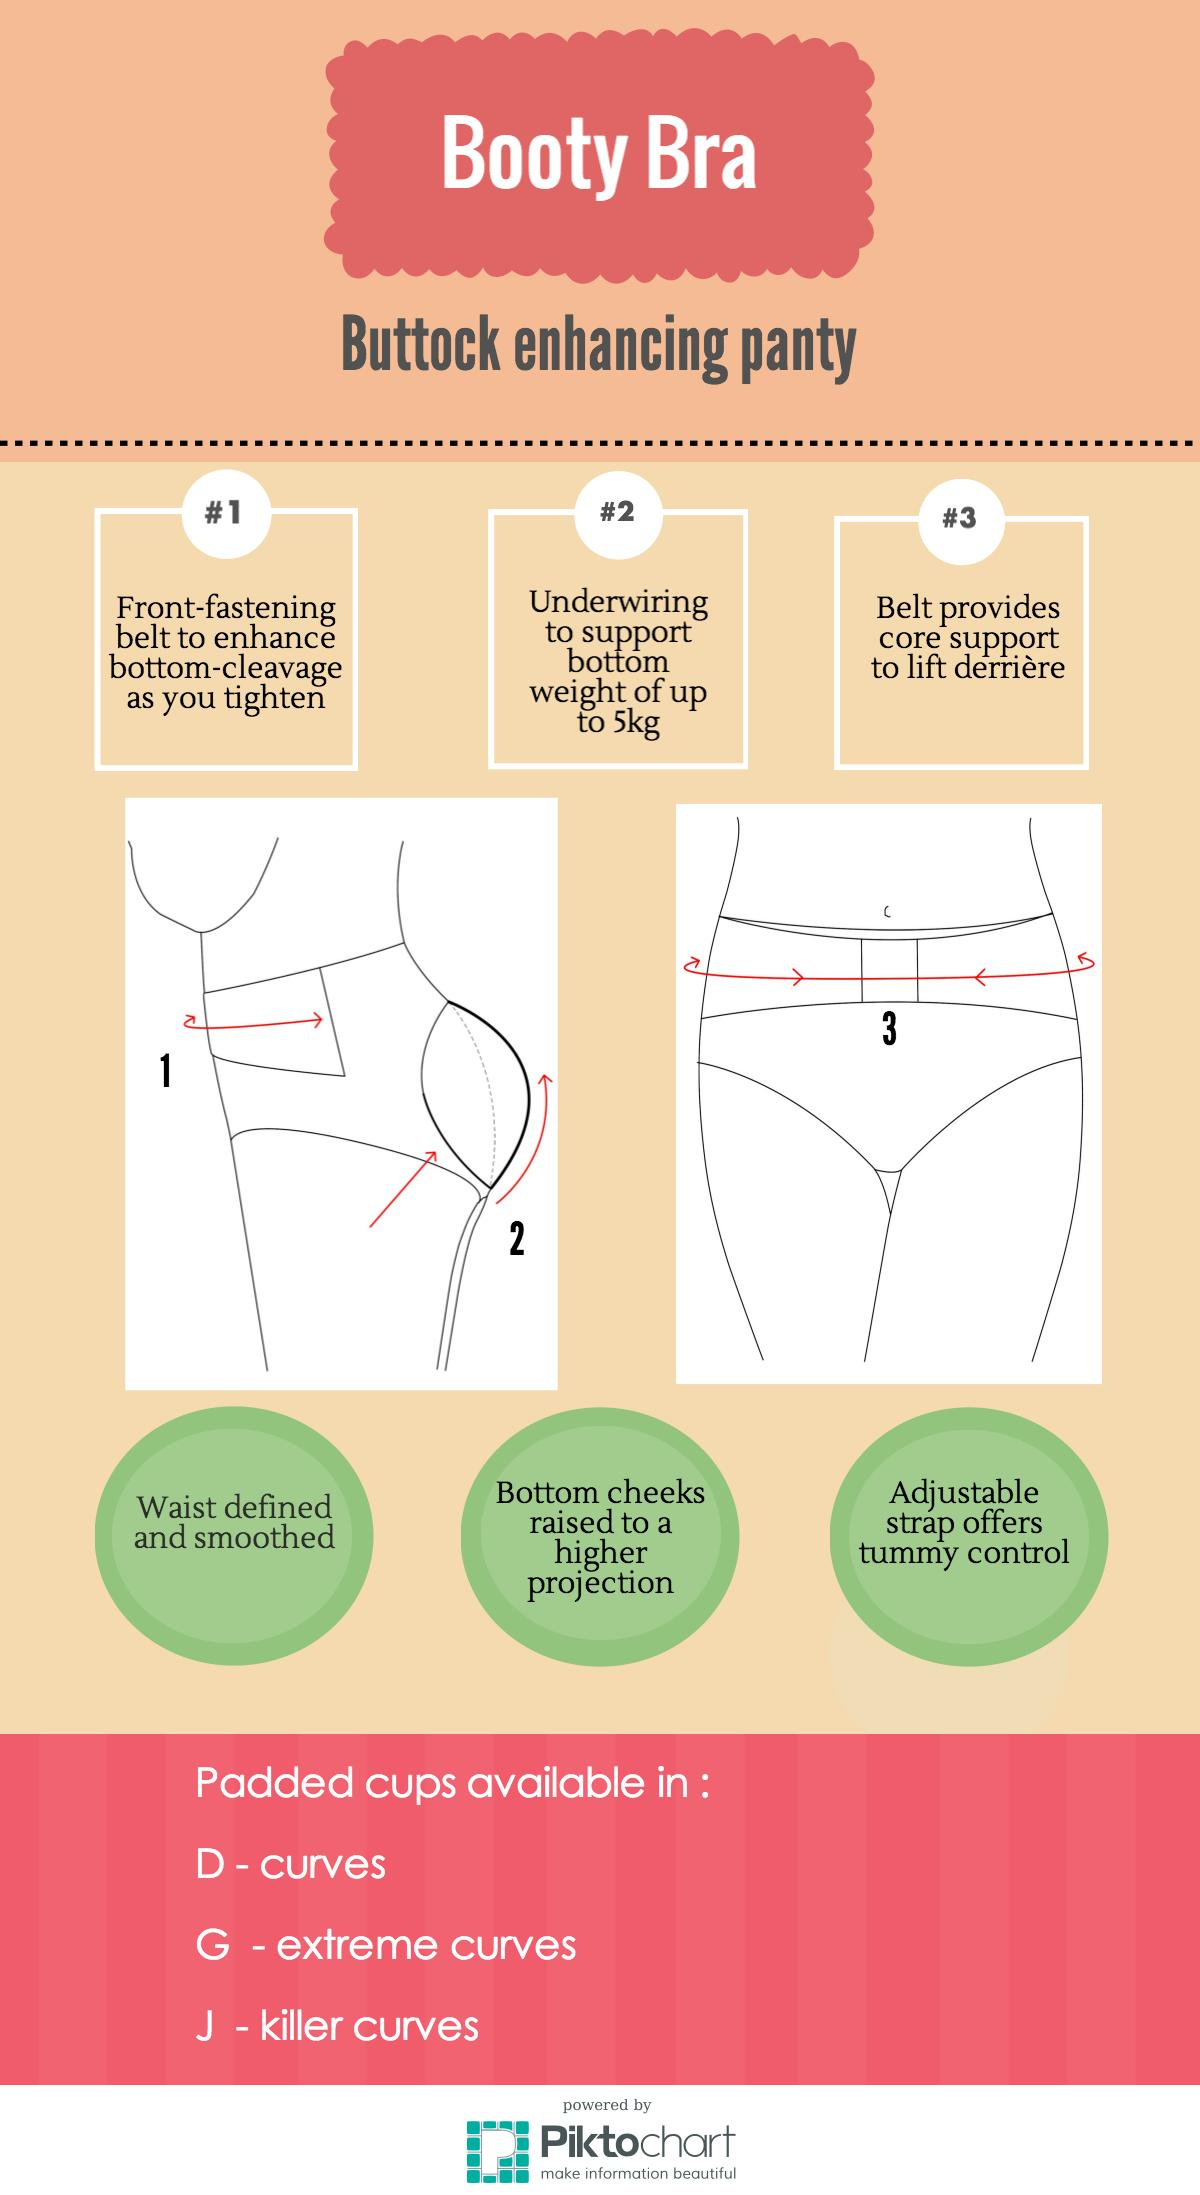 Booty Bra info-graphic 2015 (1)